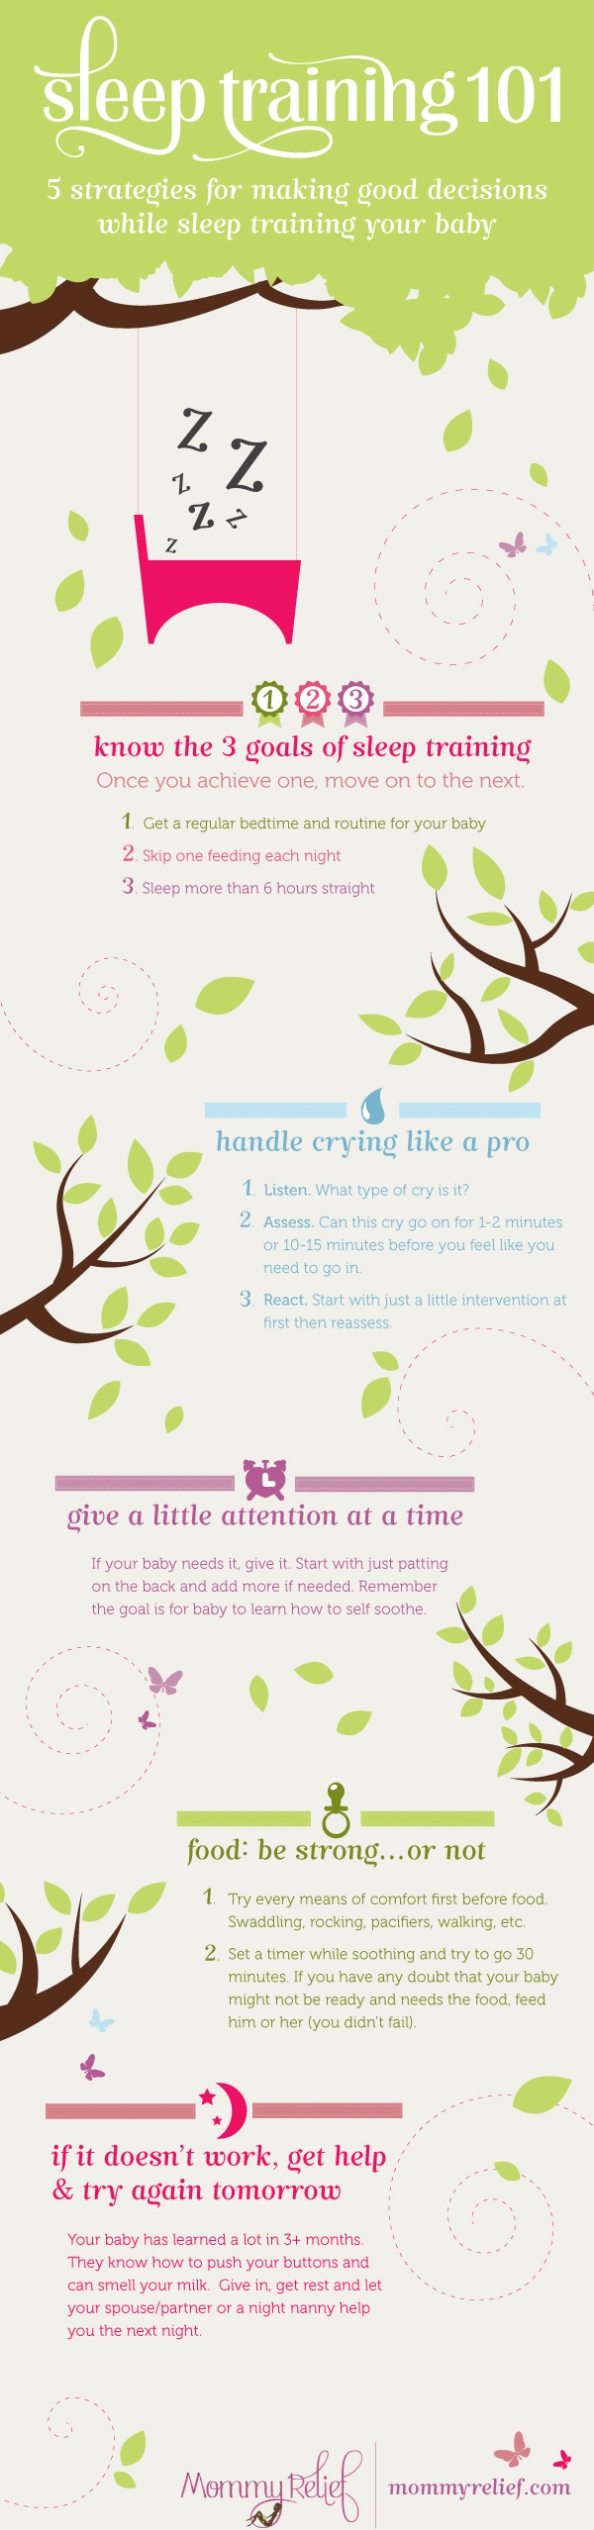 5 Strategies Assisting You With Sleep Training Your Baby (Infographic)